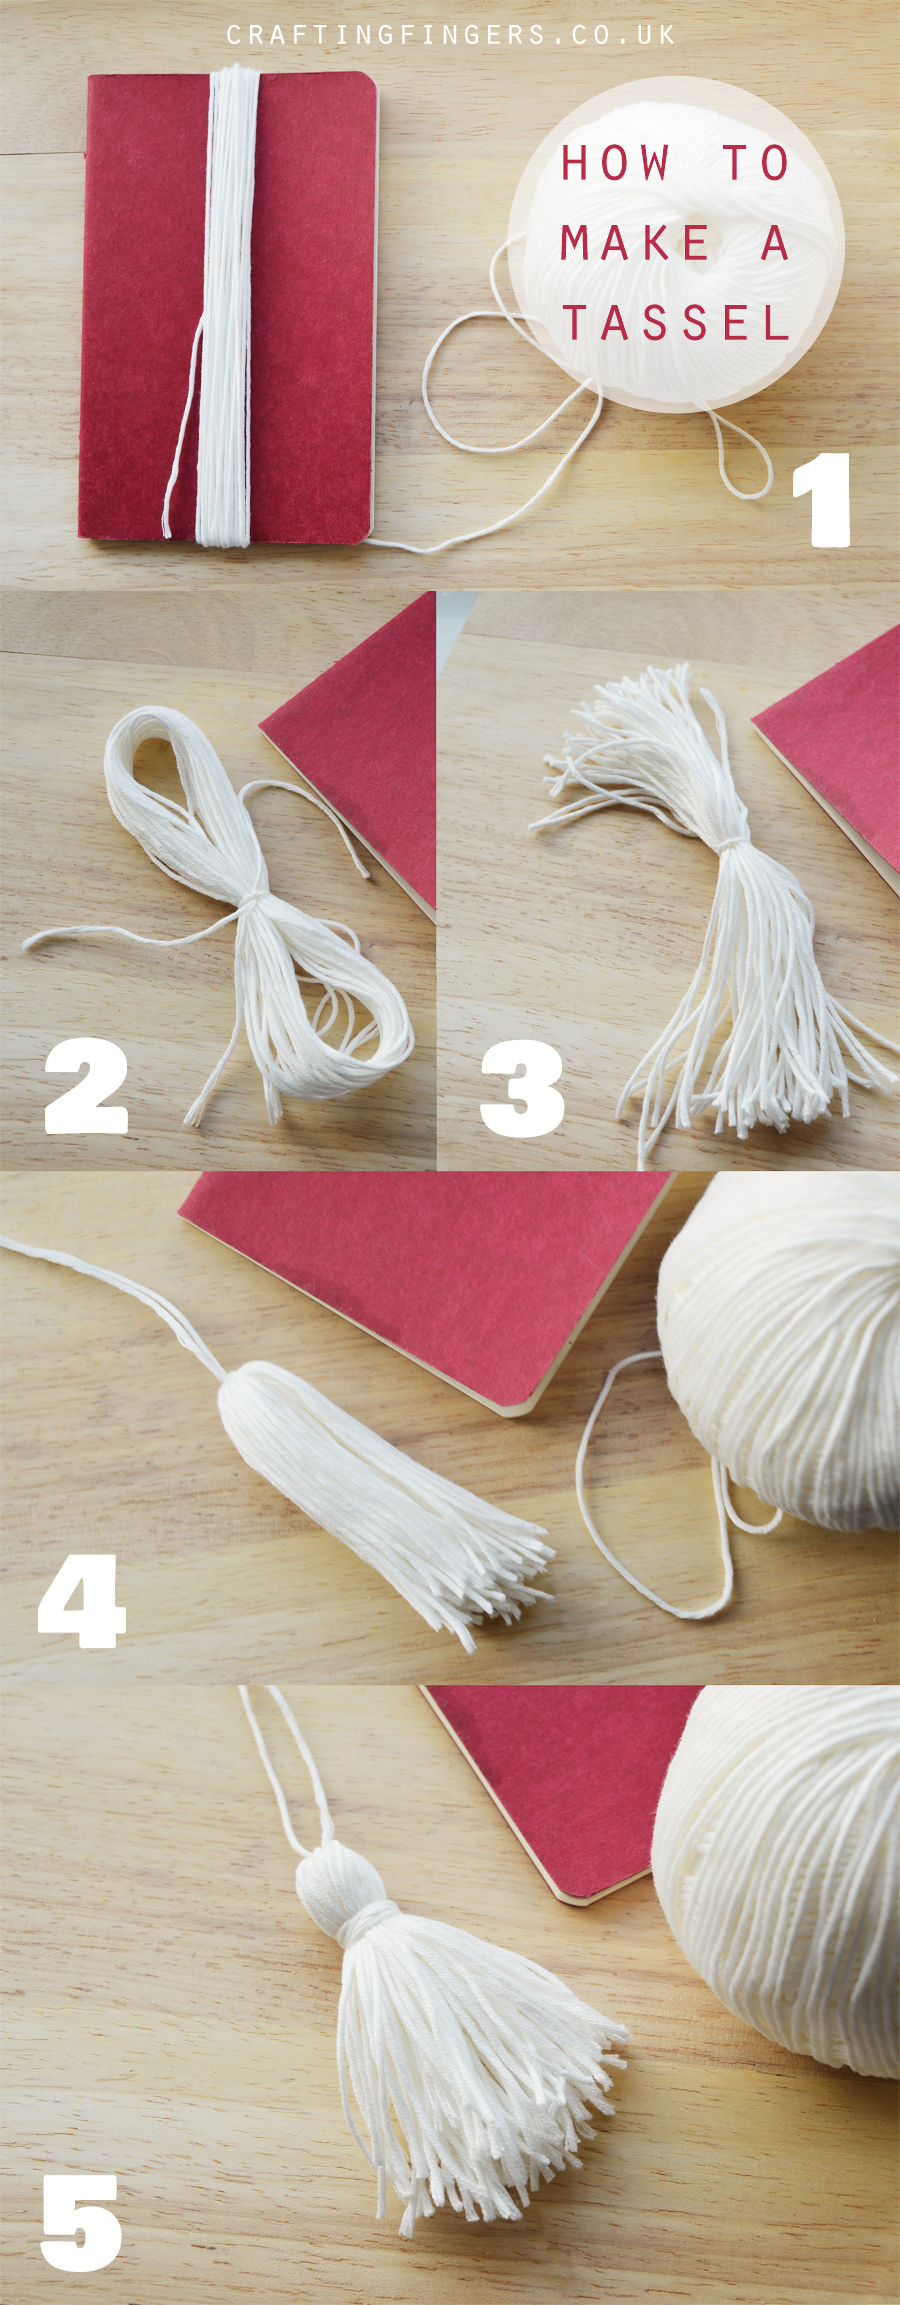 How to make a tassel (any size, any thread!) | craftingfingers.co.uk #DIY